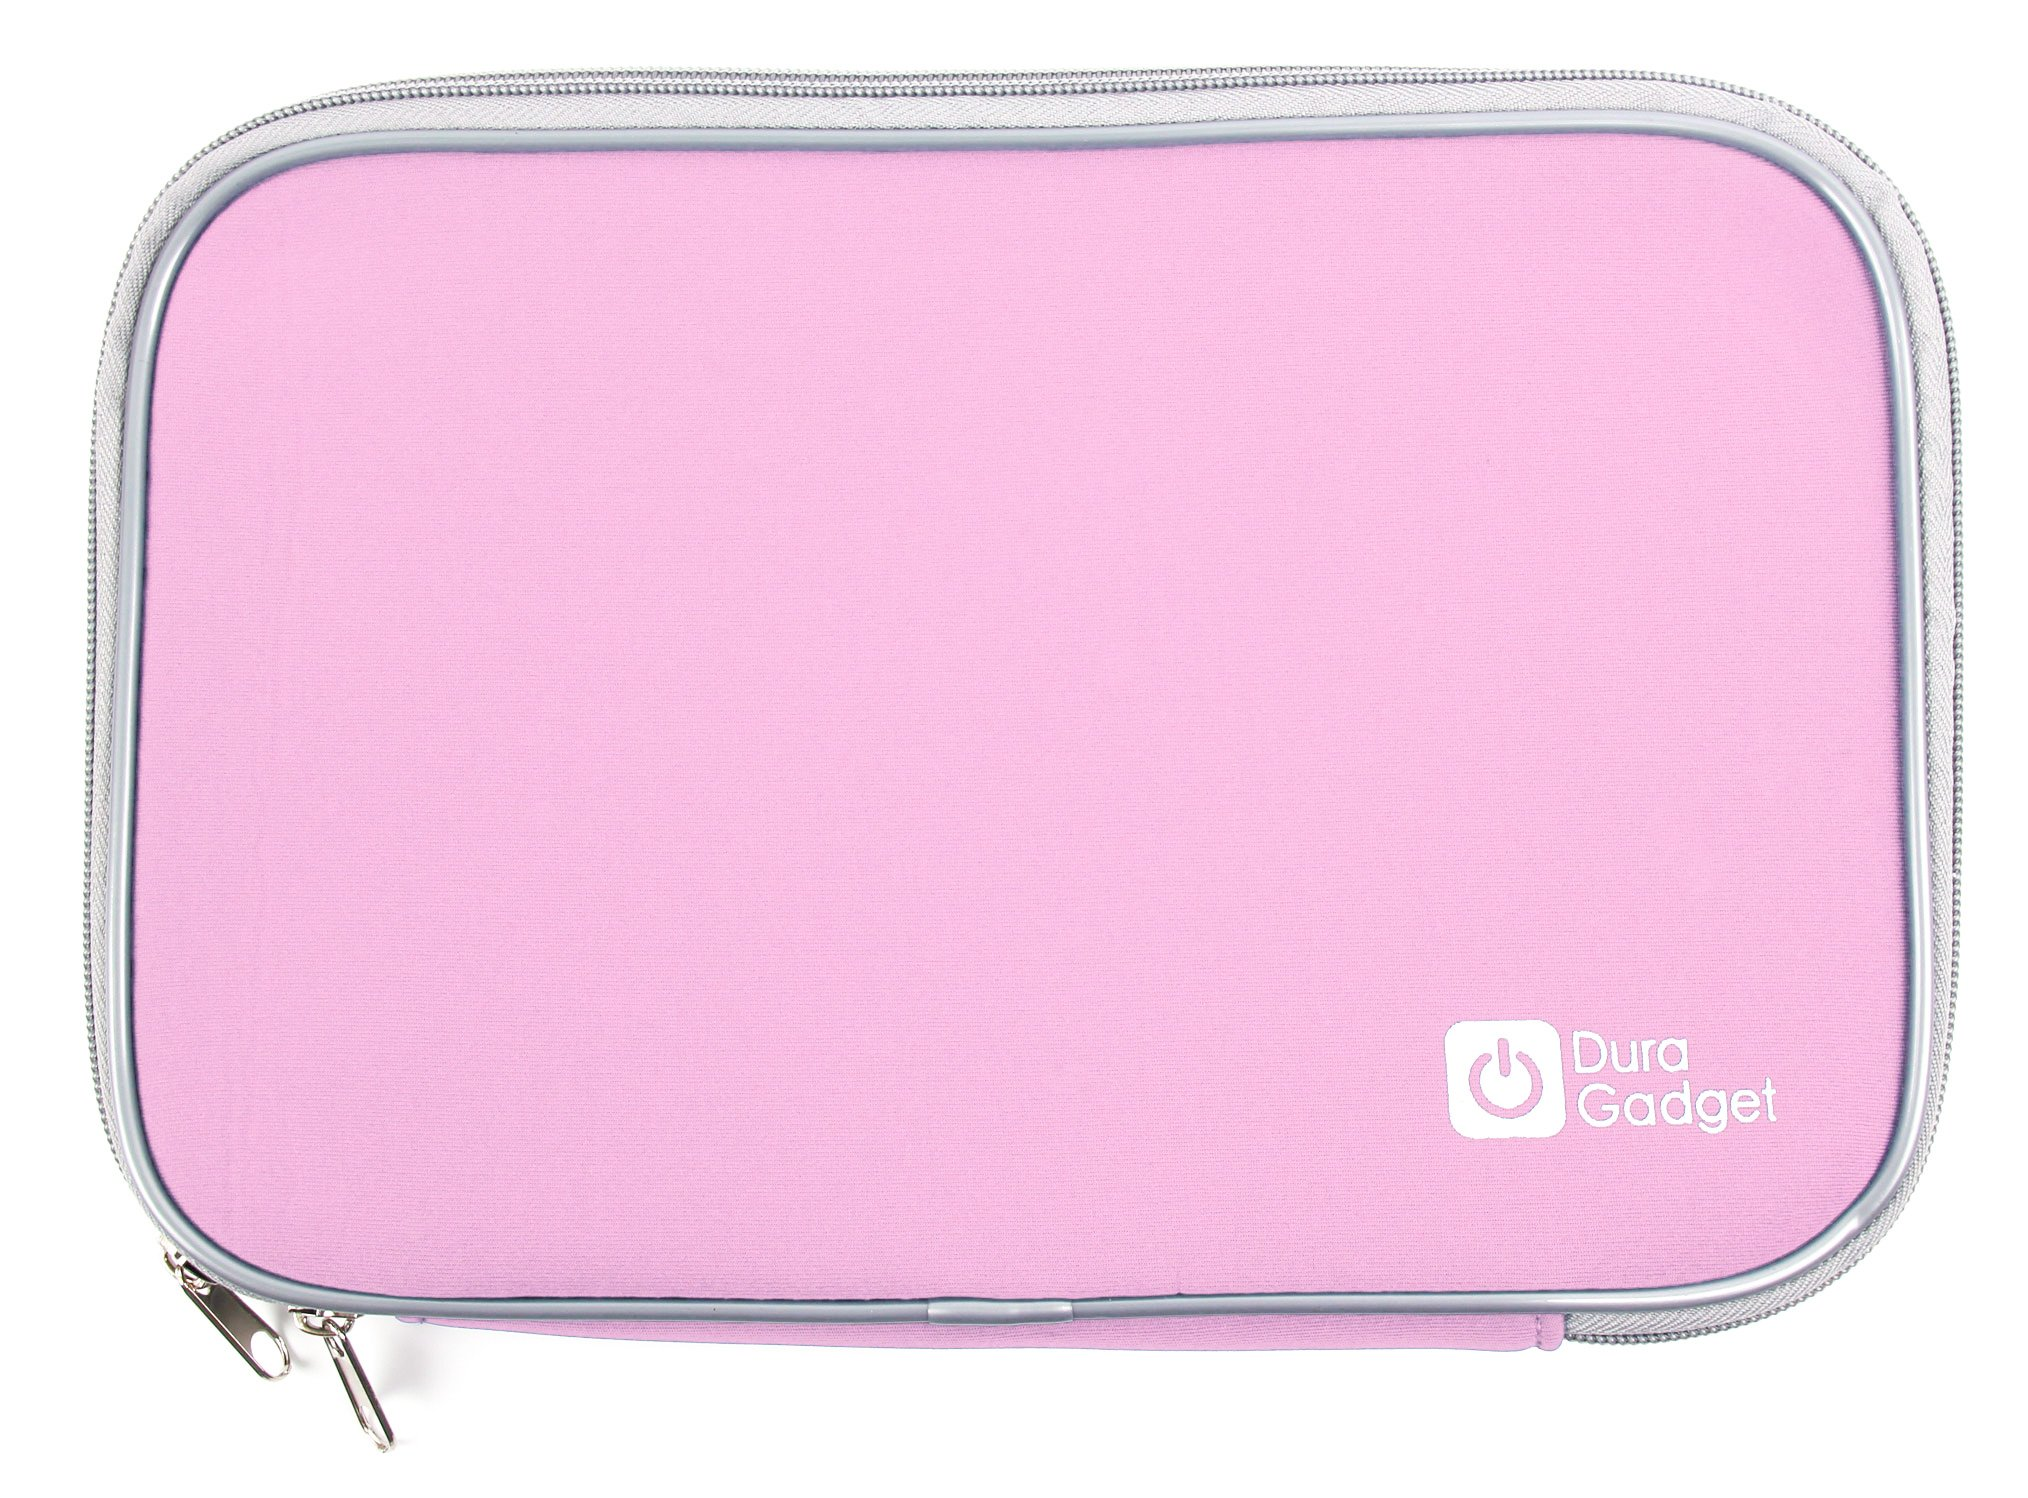 DURAGADGET Secure Pink Travel Splash Resistant Neoprene Cover For Amazon Kindle Fire HD 8.9, 8.9 4G Amazon Kindle Fire HDX, Amazon New Kindle Fire HD 8.9'' & Amazon Kindle Fire HDx 8.9''